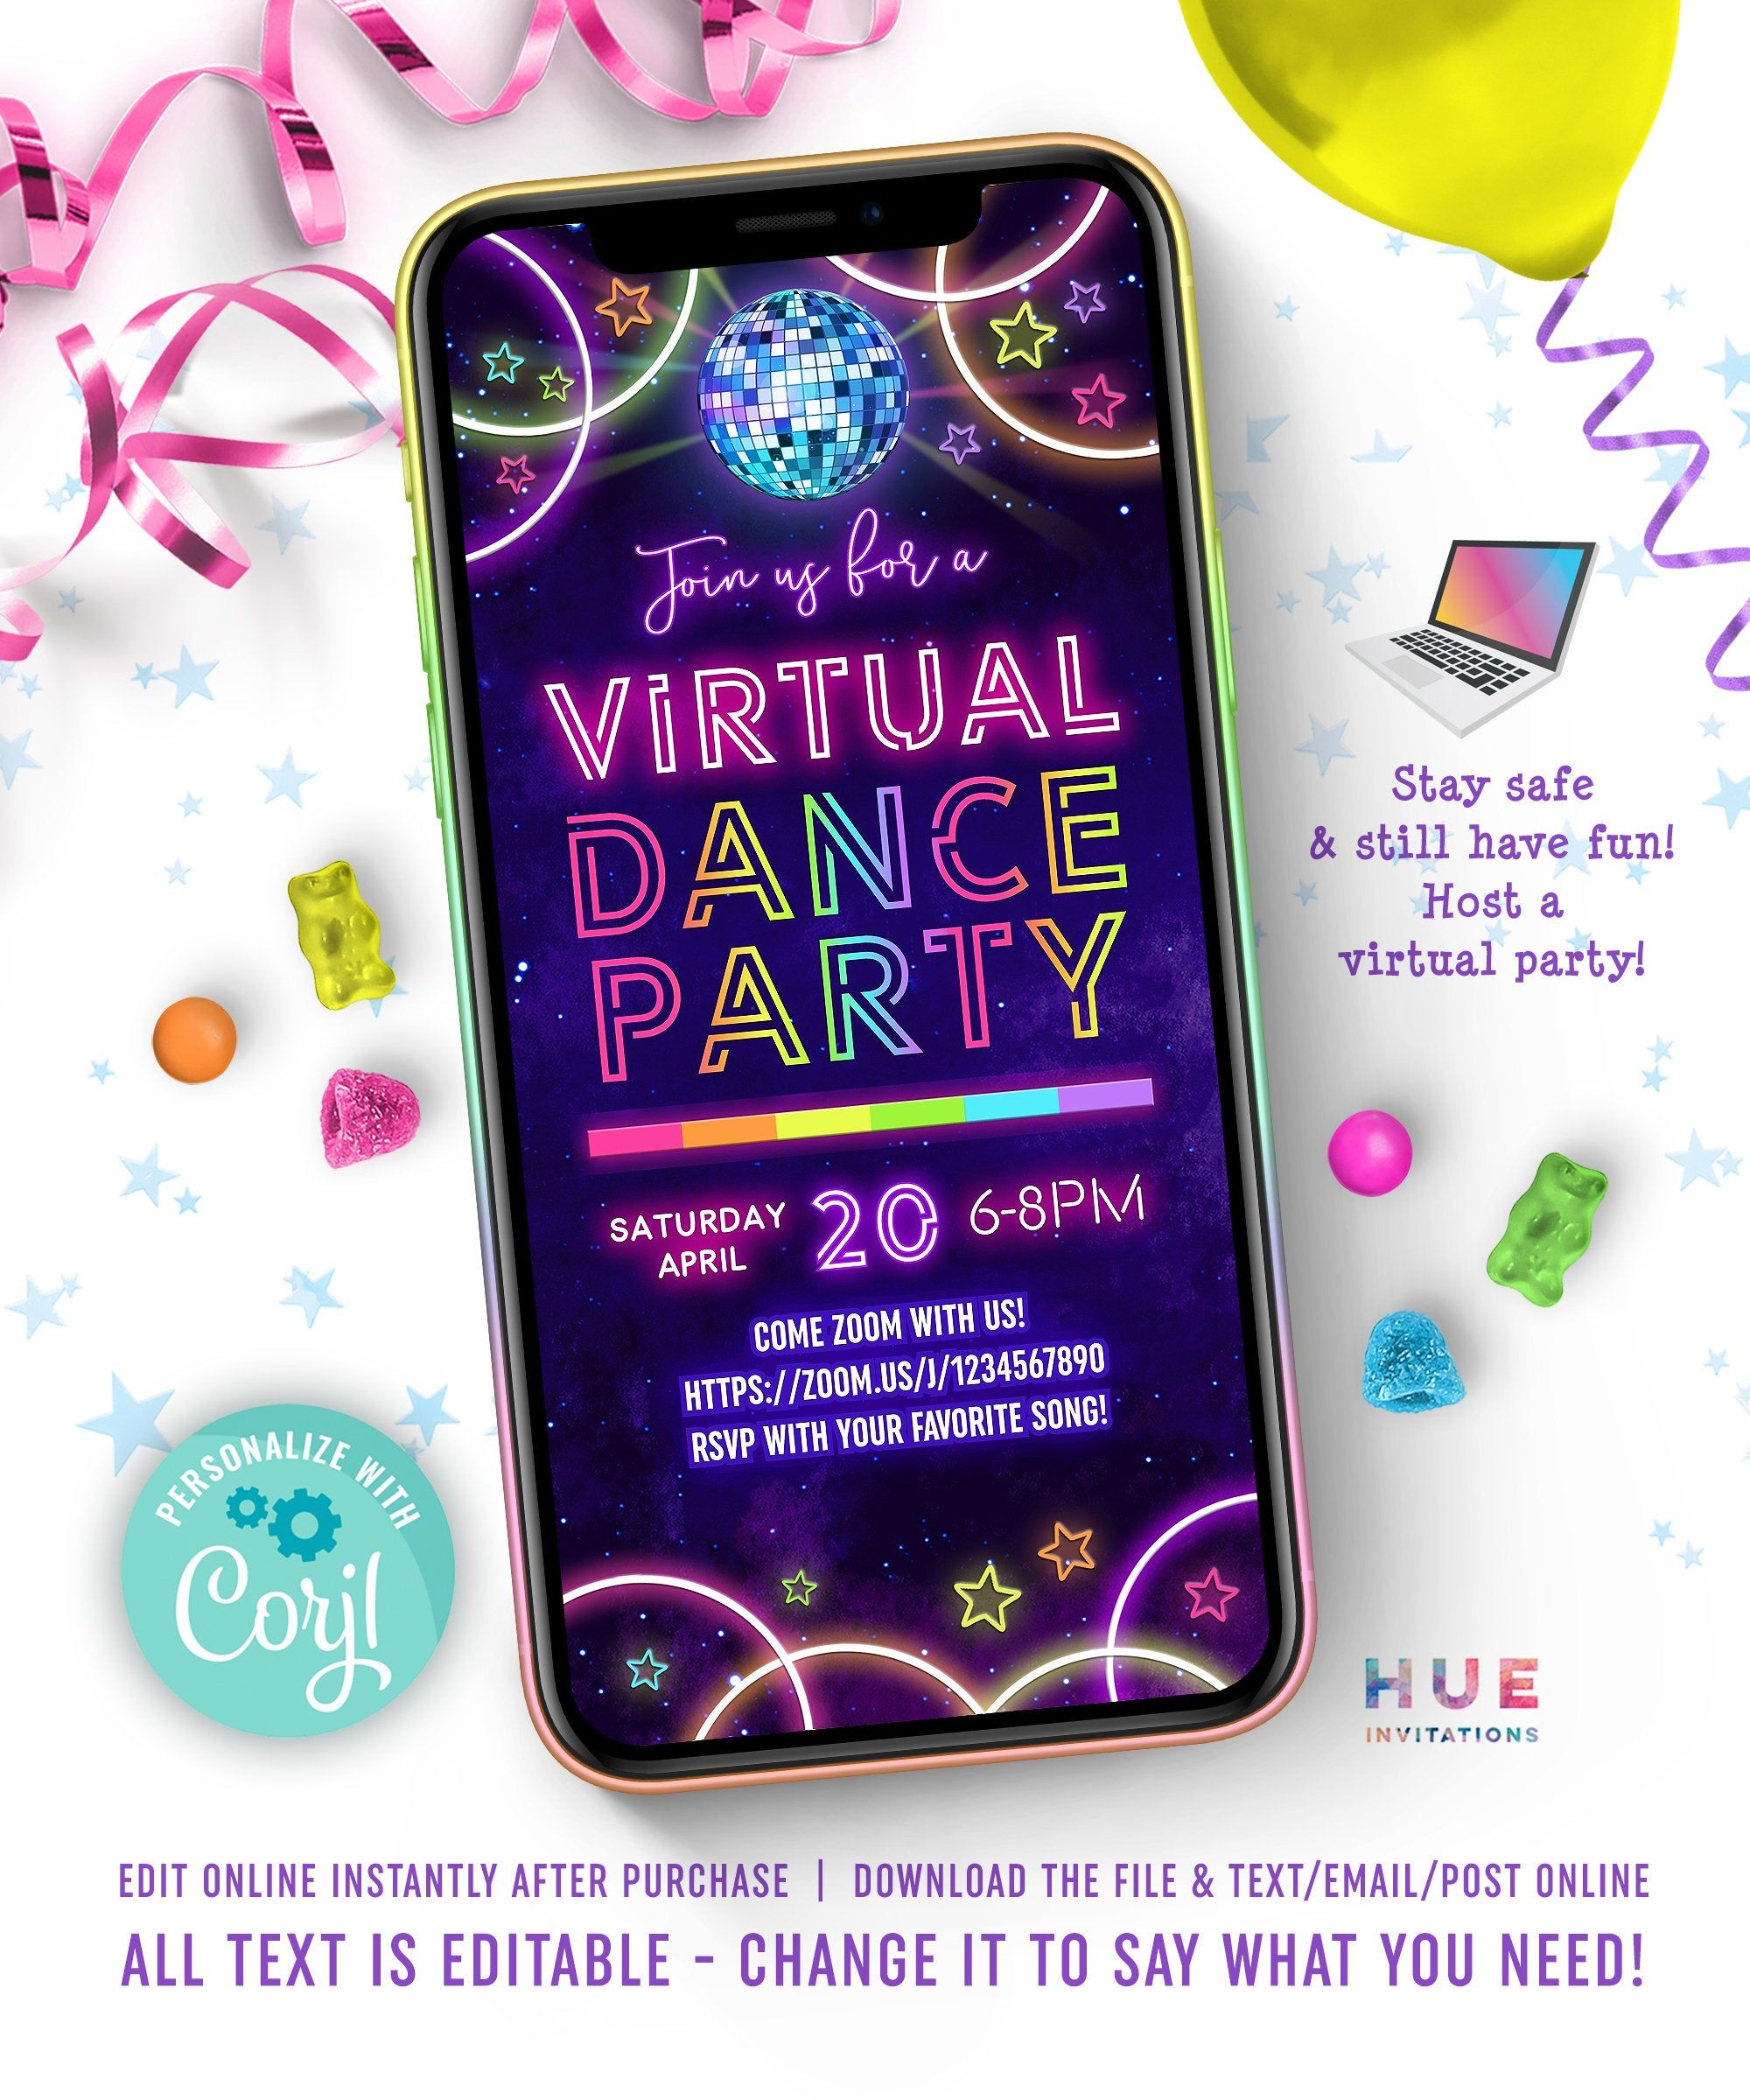 Virtual Dance Party Invitation Zoom Party Video Chat Dance Etsy In 2020 Virtual Party Dance Party Invitations Party Invitations